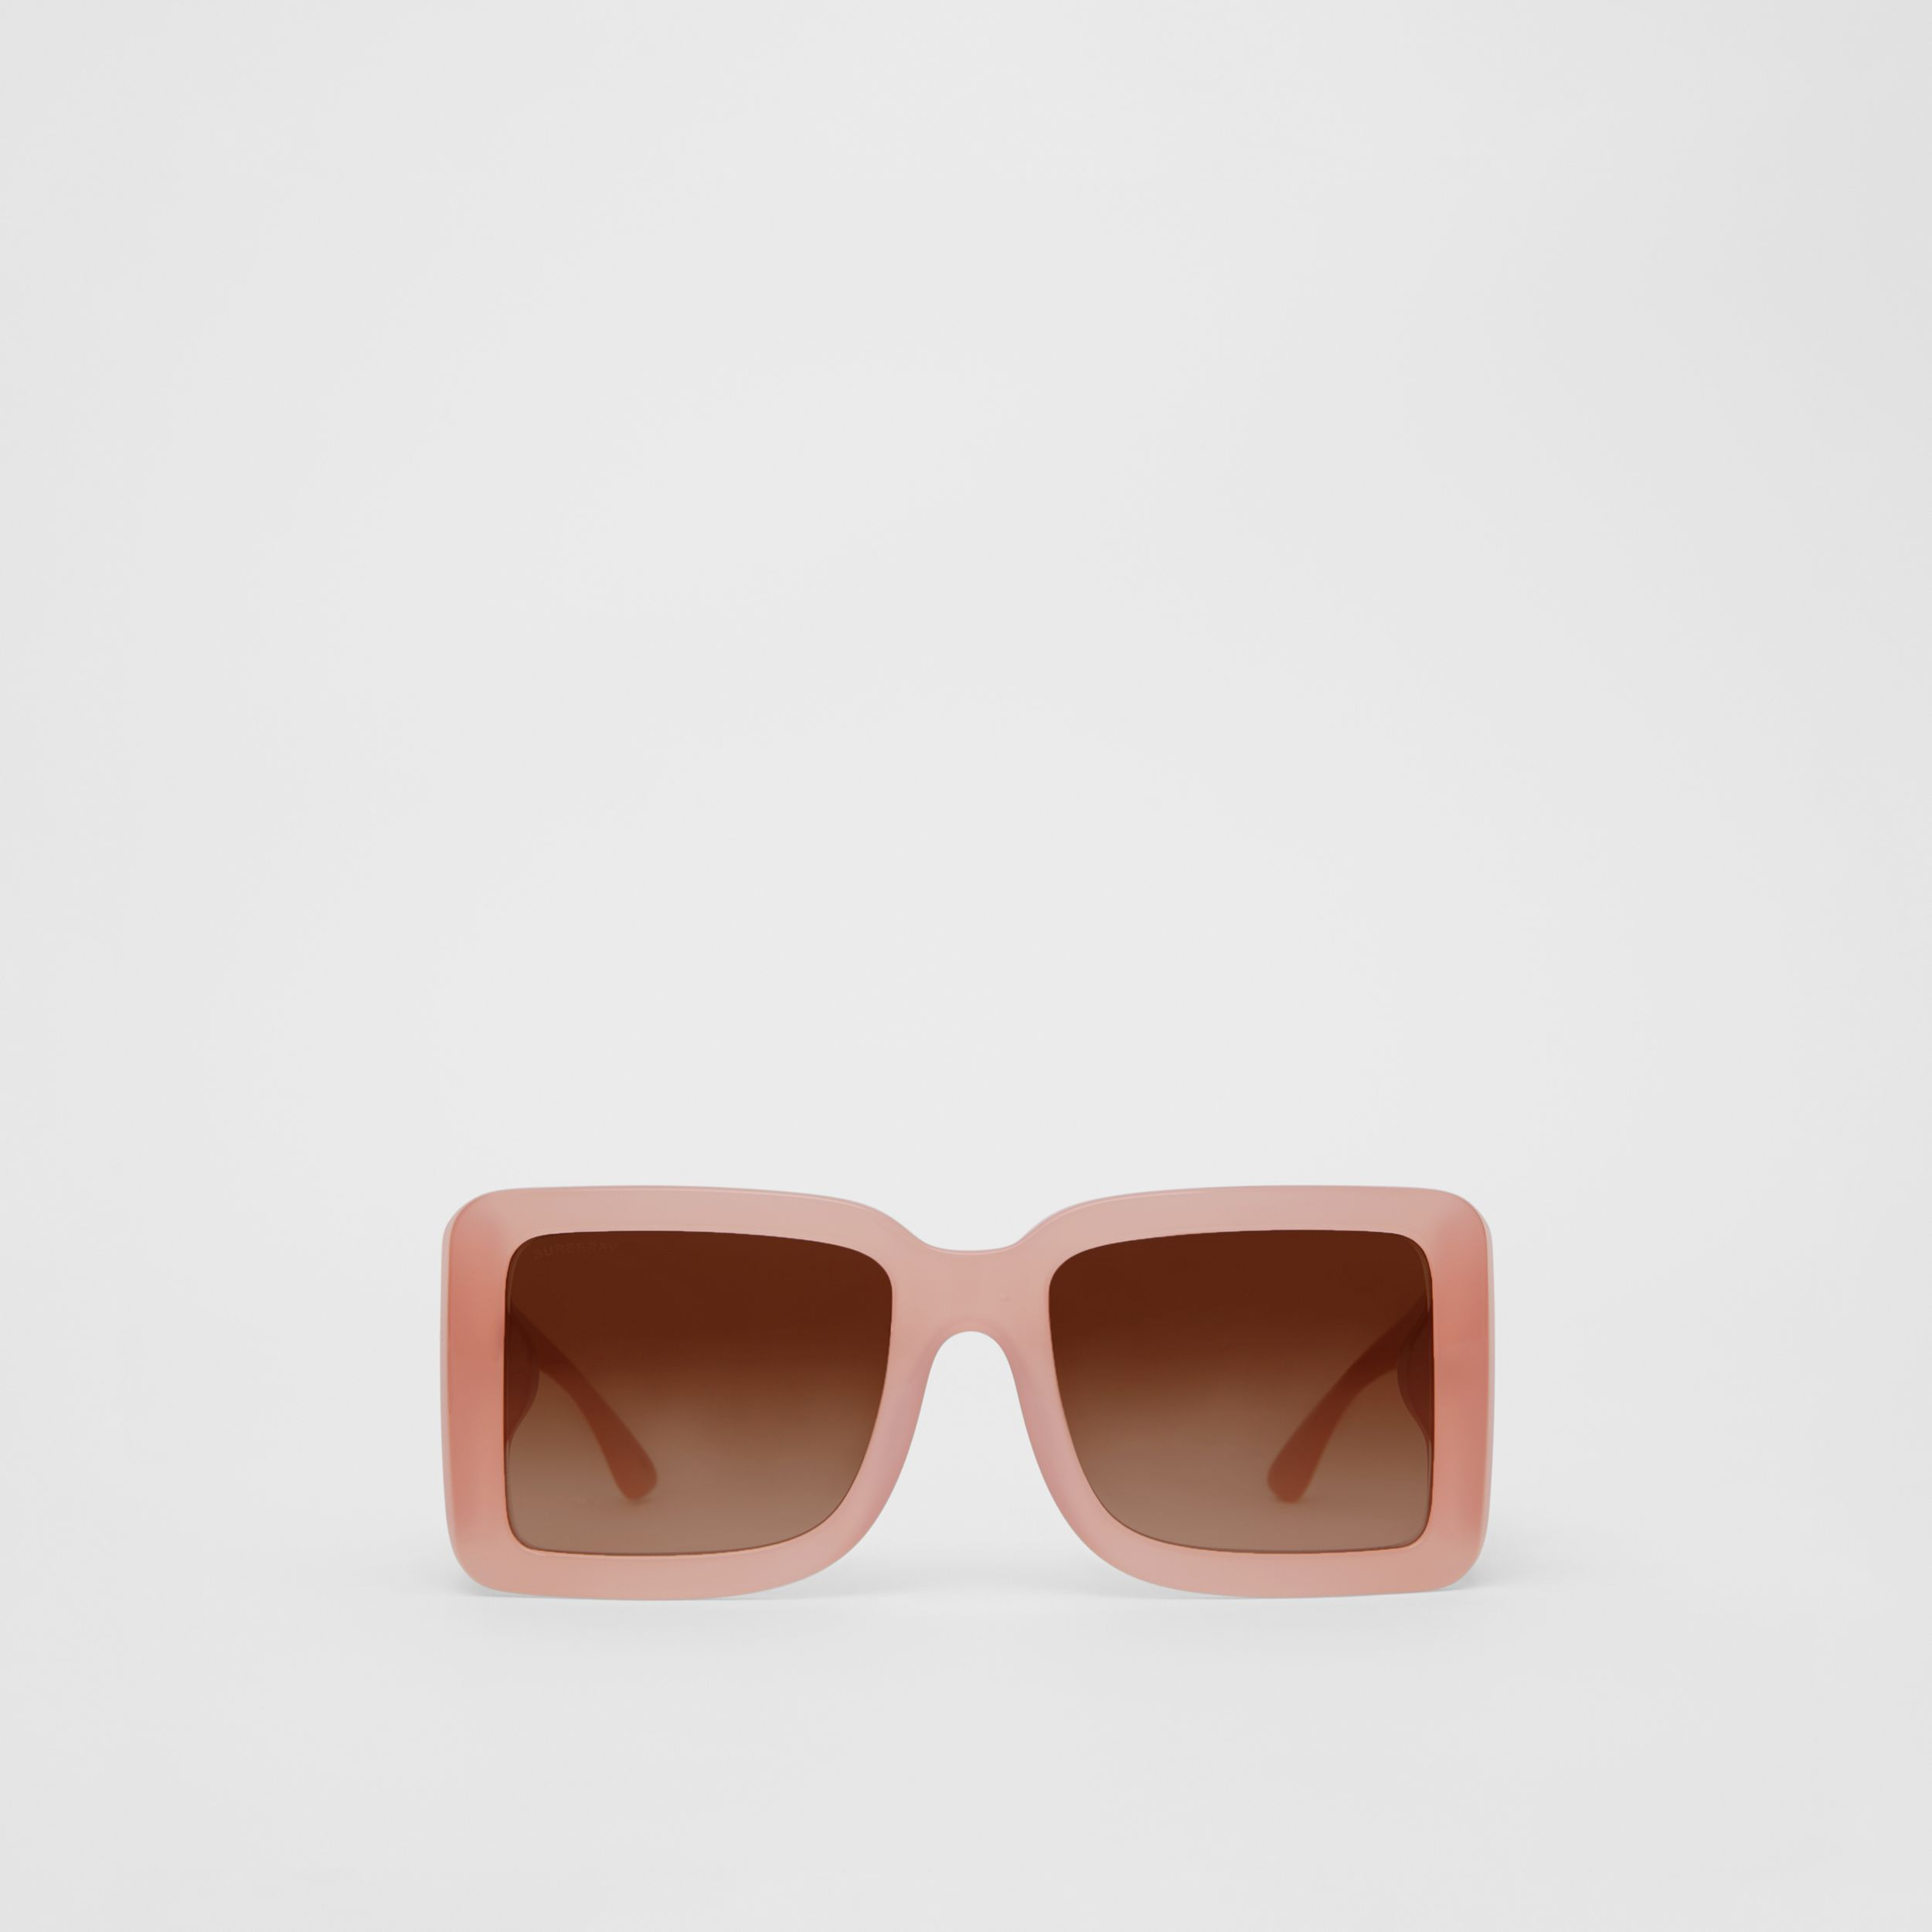 B Motif Square Frame Sunglasses in Pink - Women | Burberry - 1